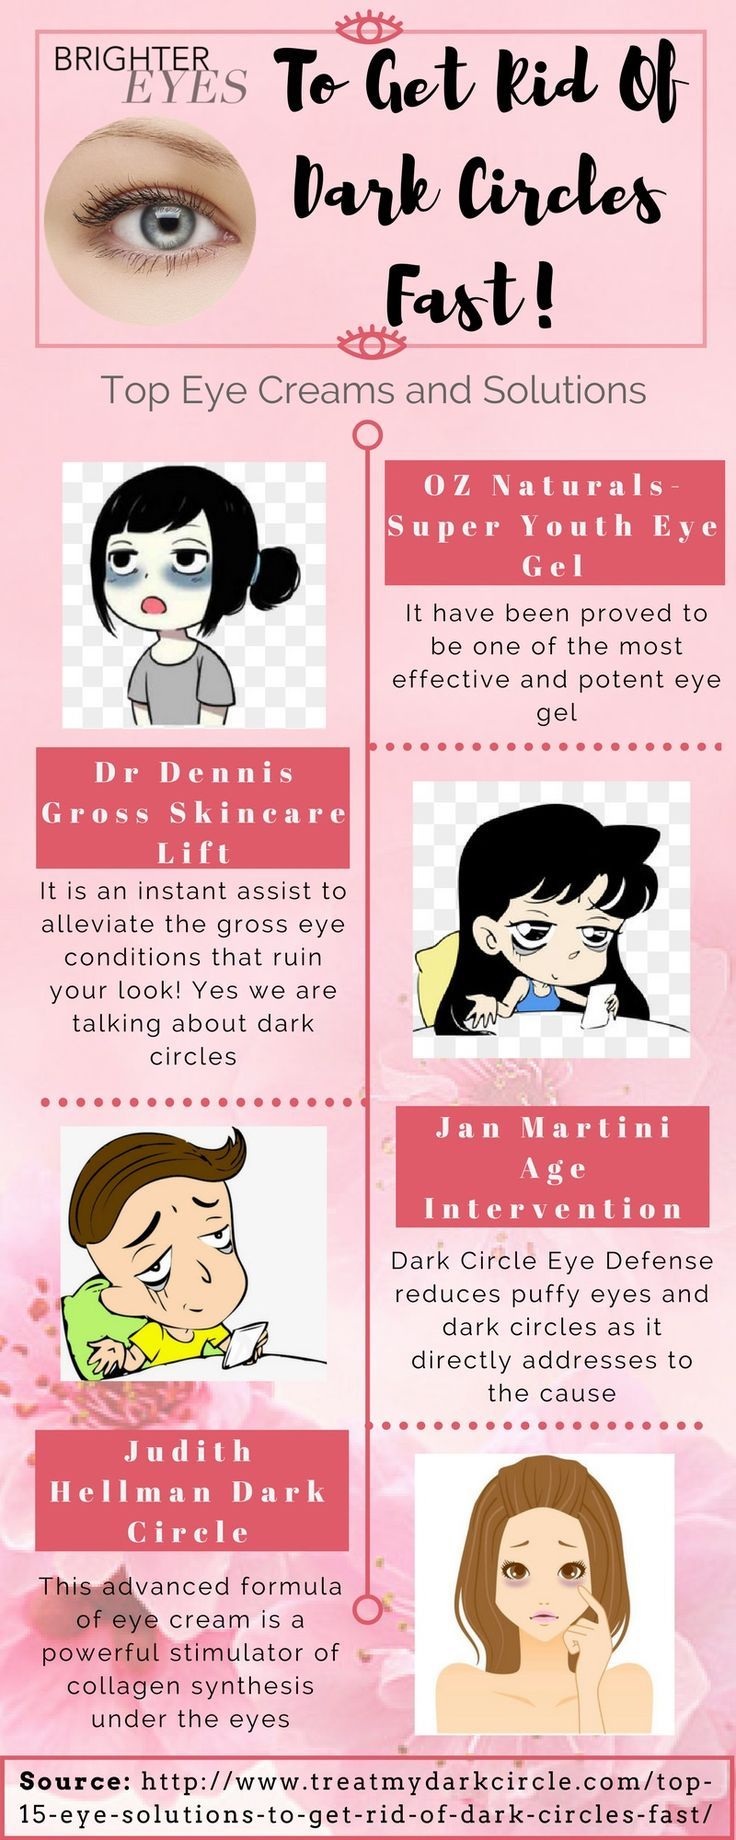 Have you been there too? With the dark shadows of the beauty blemishes and ever unwanted guests- Dark Circles!! Ever wondered what is up with these periorbital discolorations always haunting our eyes, mind, appearance, confidence all at once?!